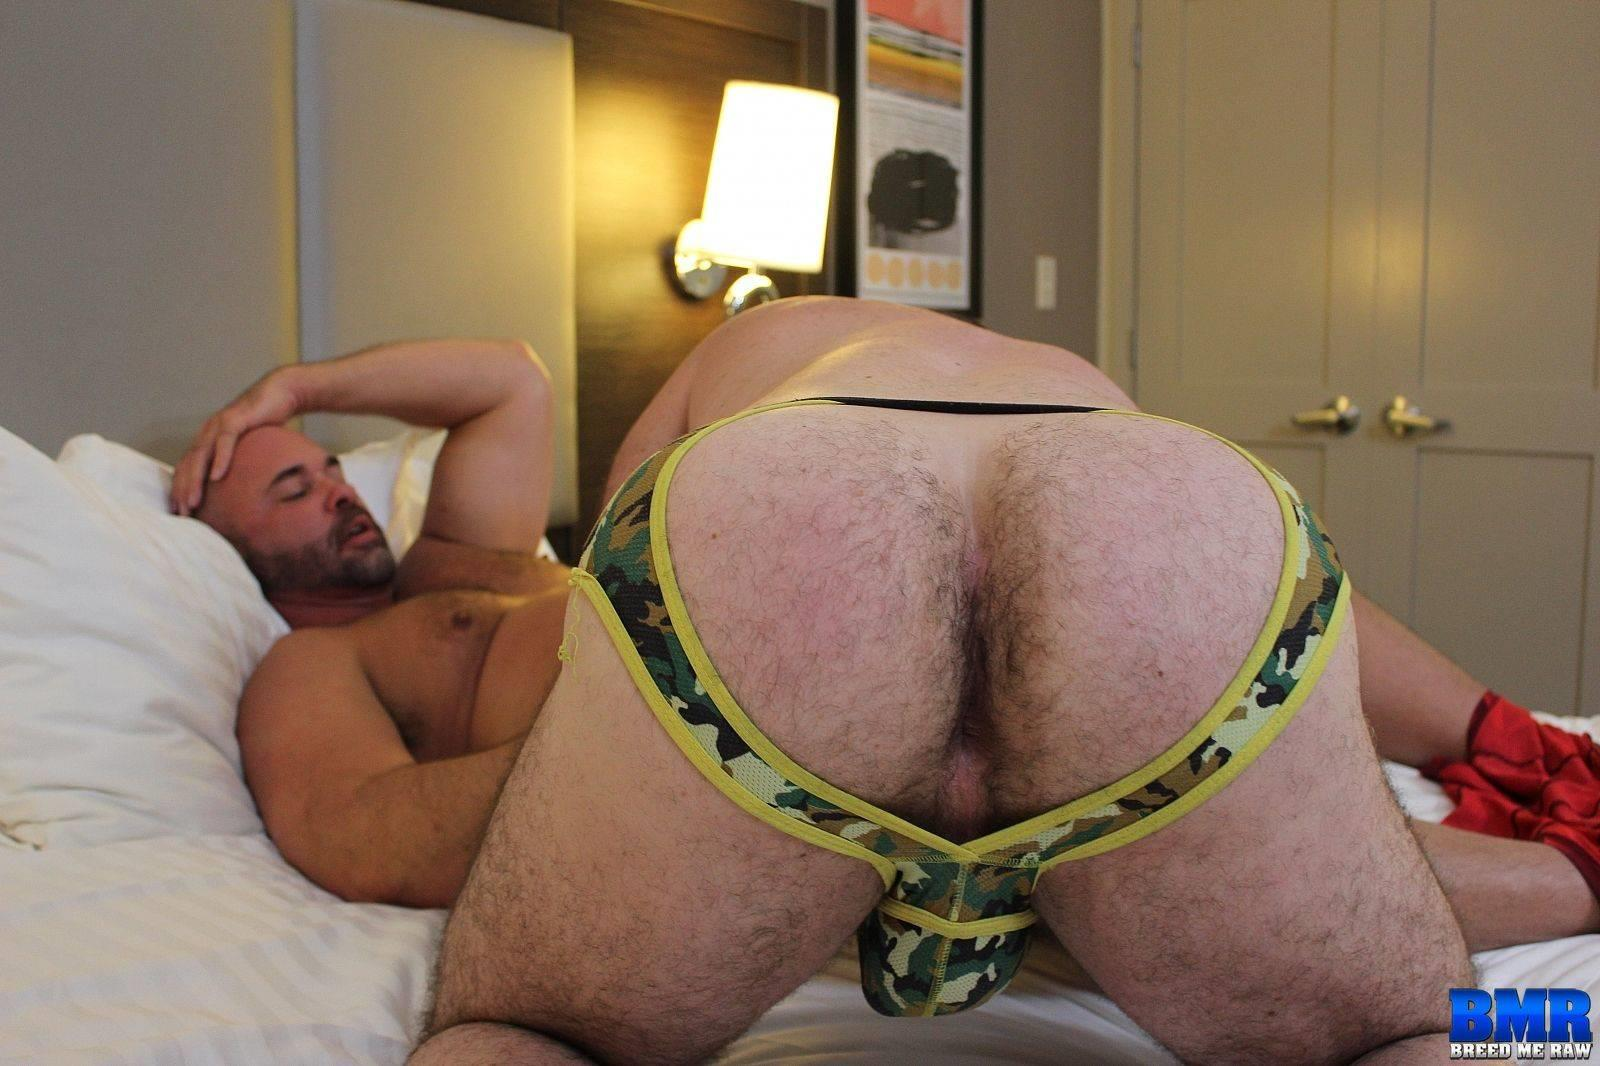 Breed-Me-Raw-Bishop-Angus-and-Tyler-Reed-Hairy-Muscle-Daddies-Breeding-05 Hairy Muscle Daddies Tyler Reed and Bishop Angus Breed